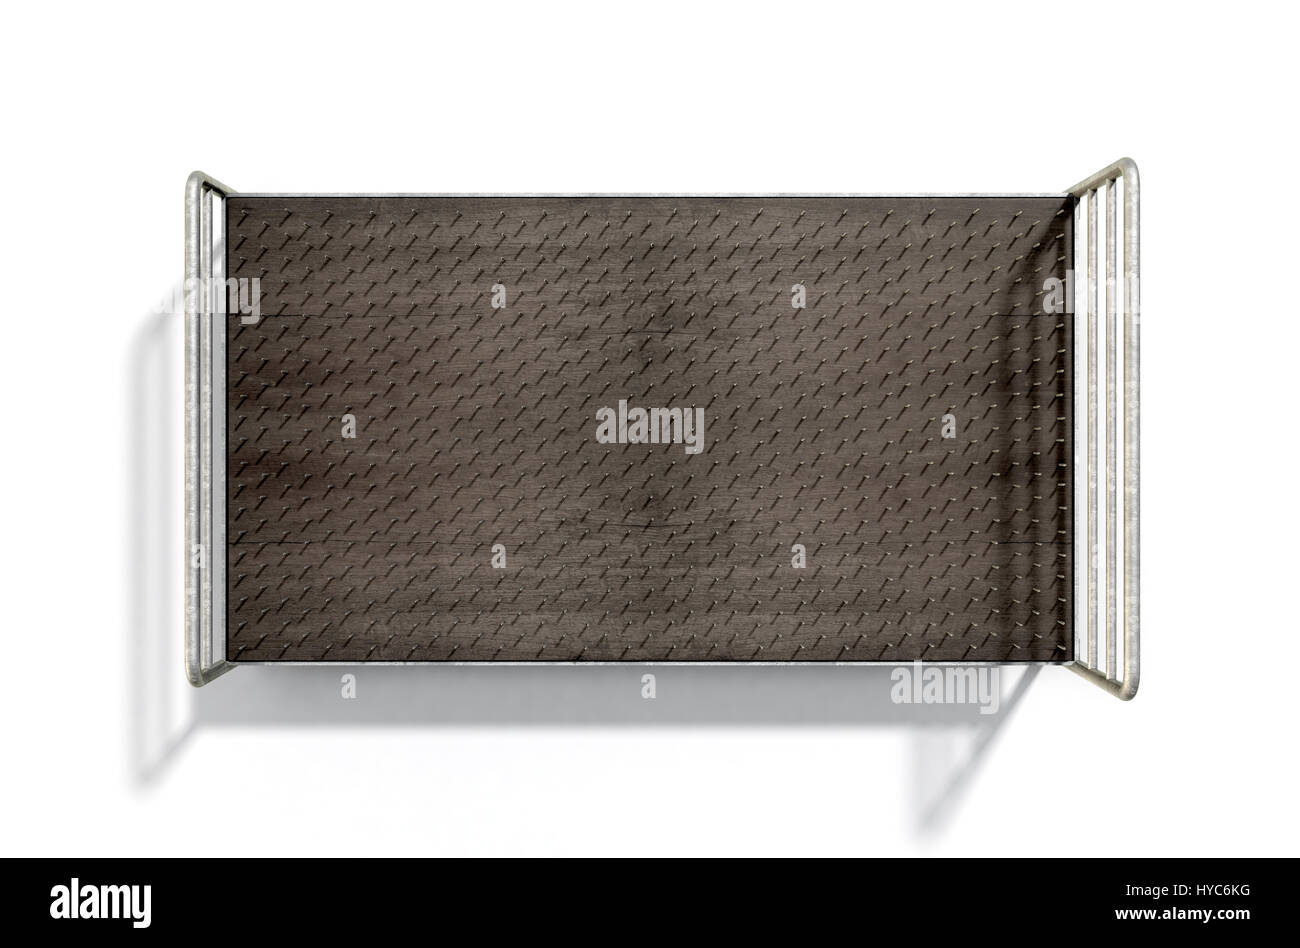 A metaphor showing a literal bed of nails with a metal frame on an isolated white studio background - 3D Render - Stock Image